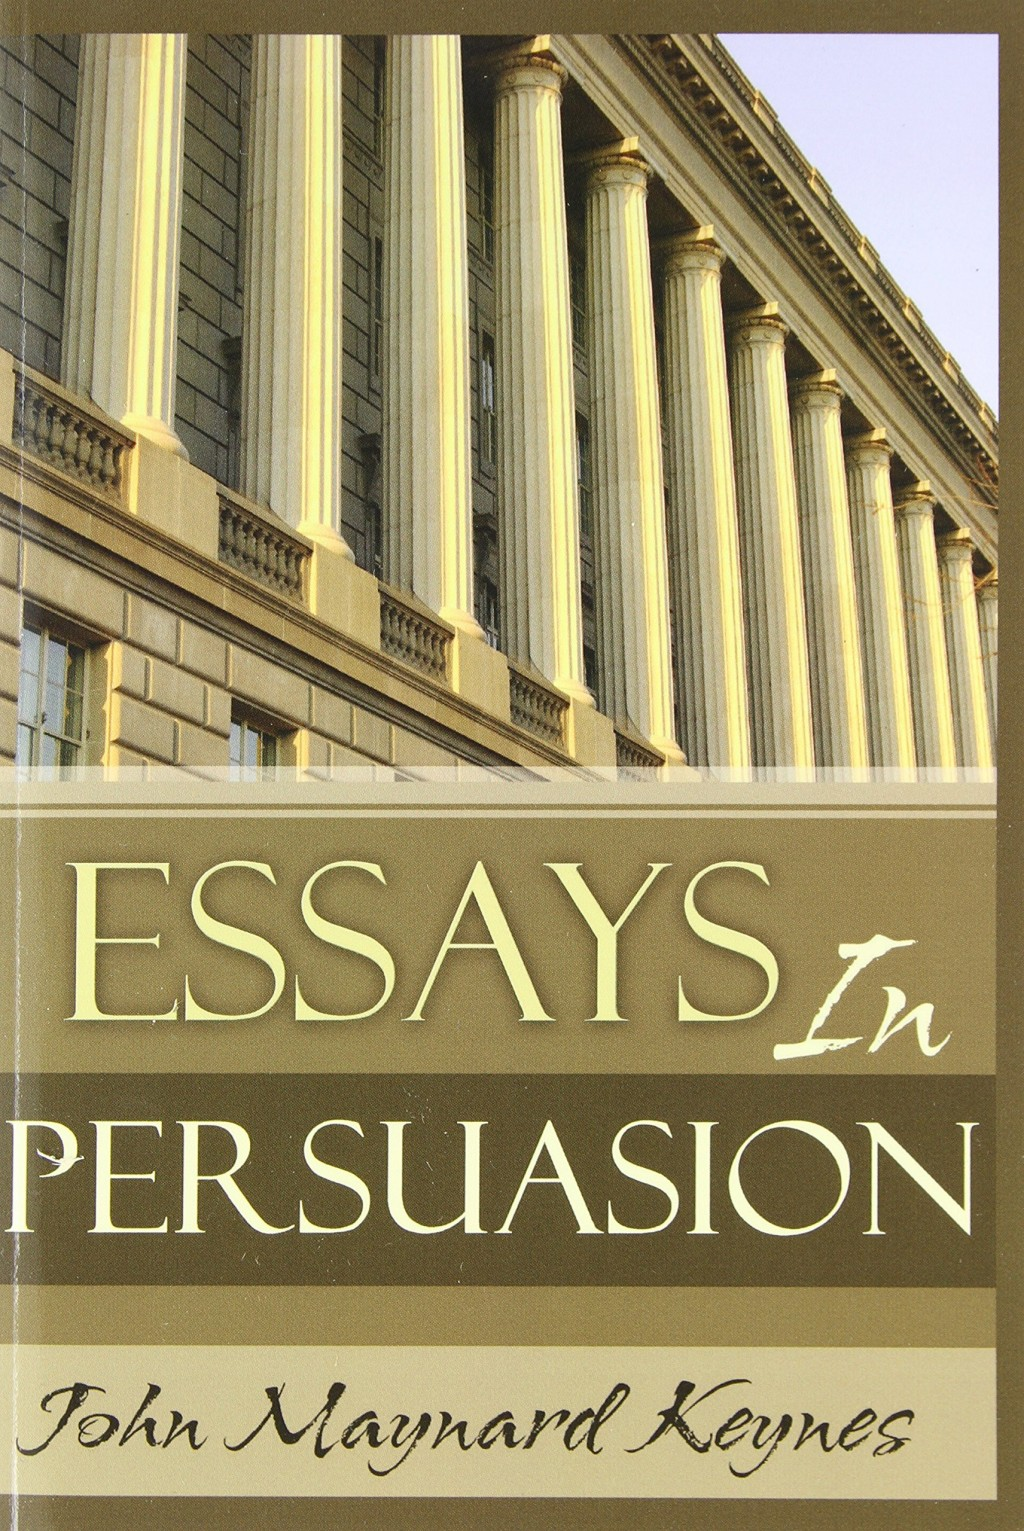 001 Essay Example A1hzb1u2bixl Essays In Remarkable Persuasion Keynes 1931 Wikipedia Summary Large